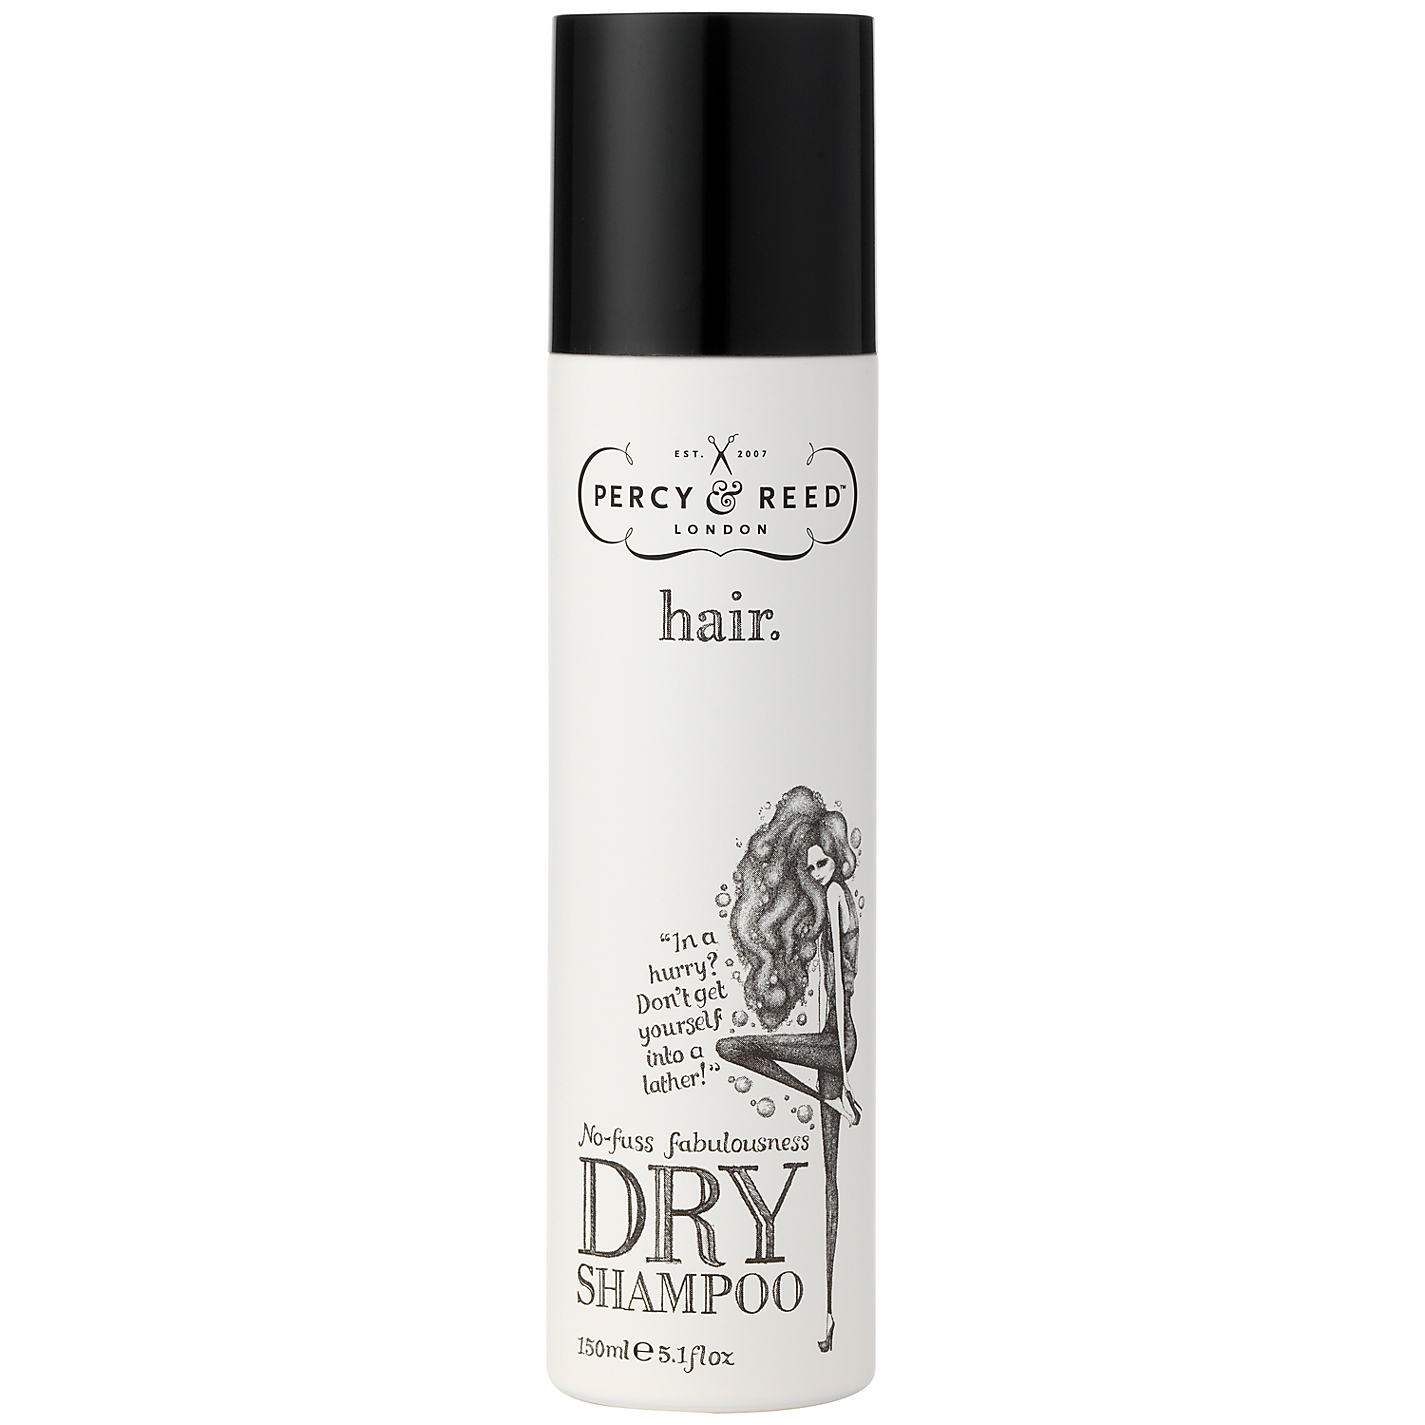 Dry shampoo is a must have!